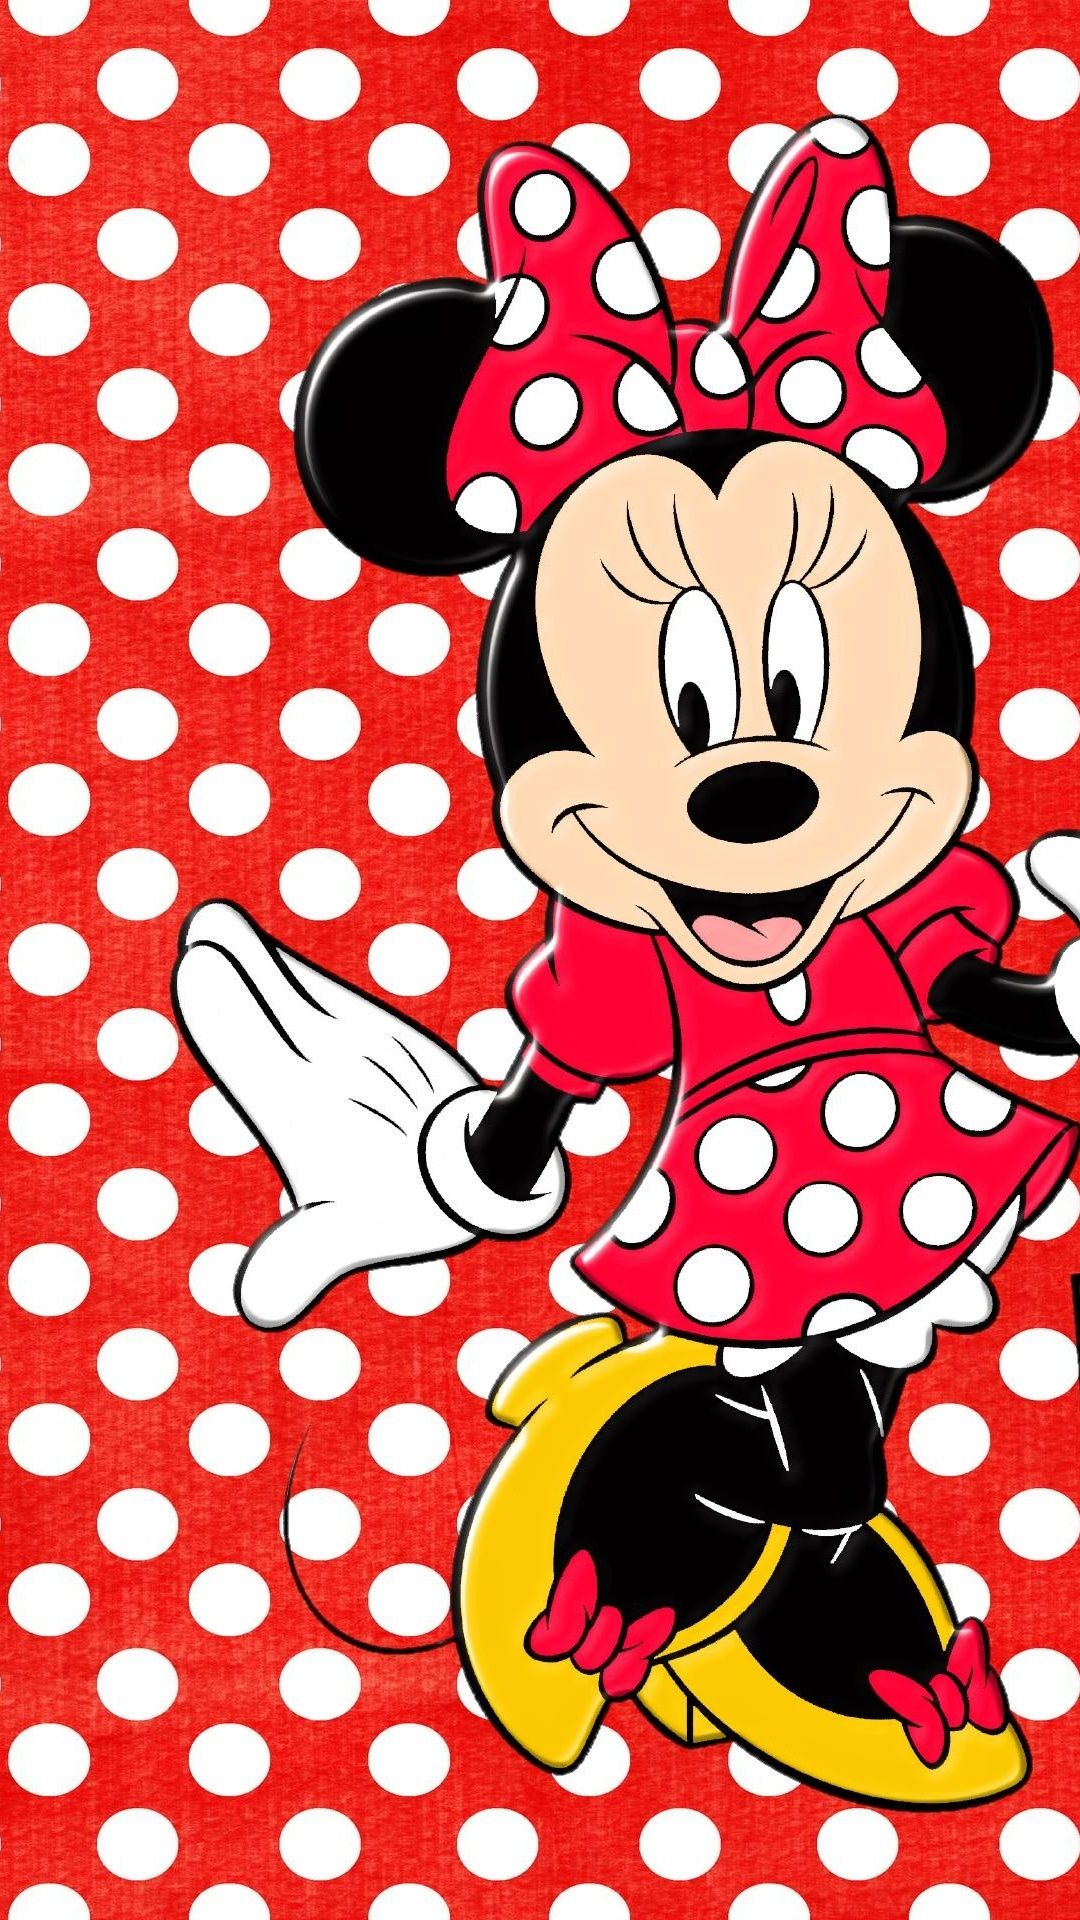 Minnie mouse iphone wallpapers top free minnie mouse iphone backgrounds wallpaperaccess - Minnie mouse wallpaper pinterest ...